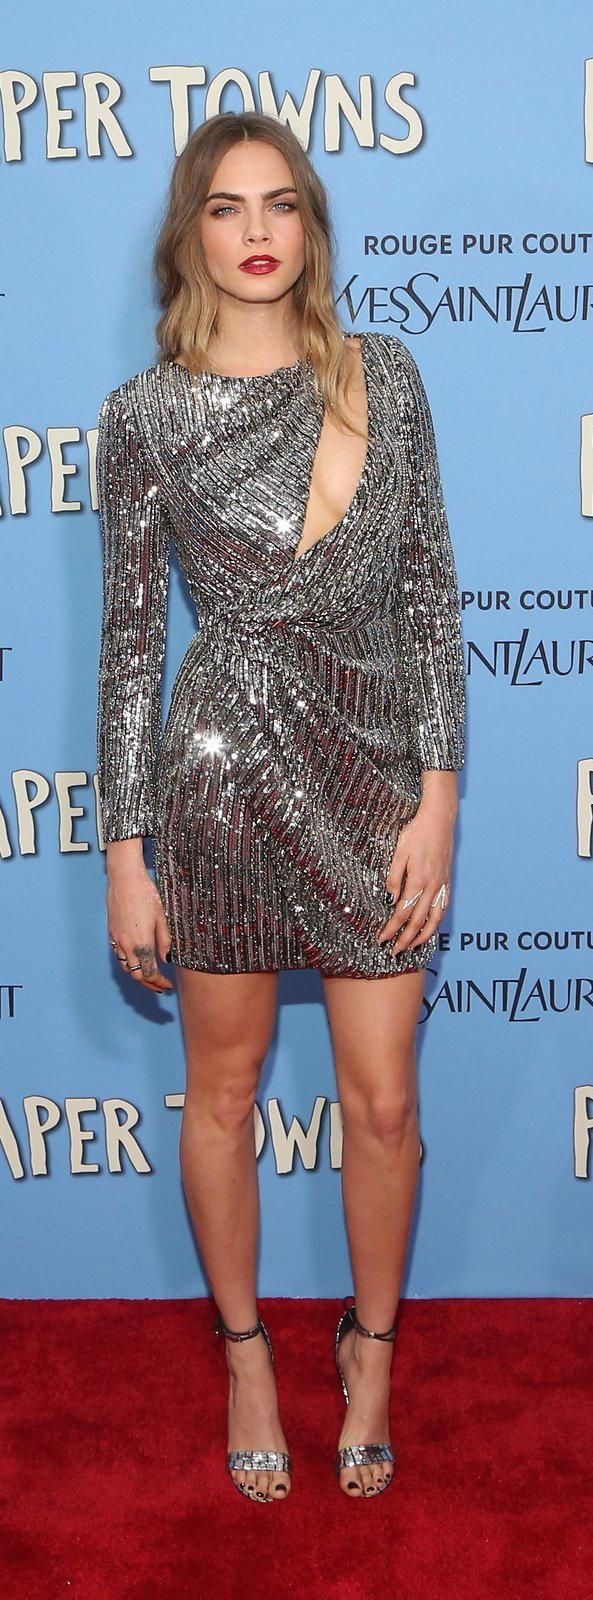 Cara Delevingne in Saint Laurent, Jennifer Fisher Jewelry, and Alejandra G. shoes